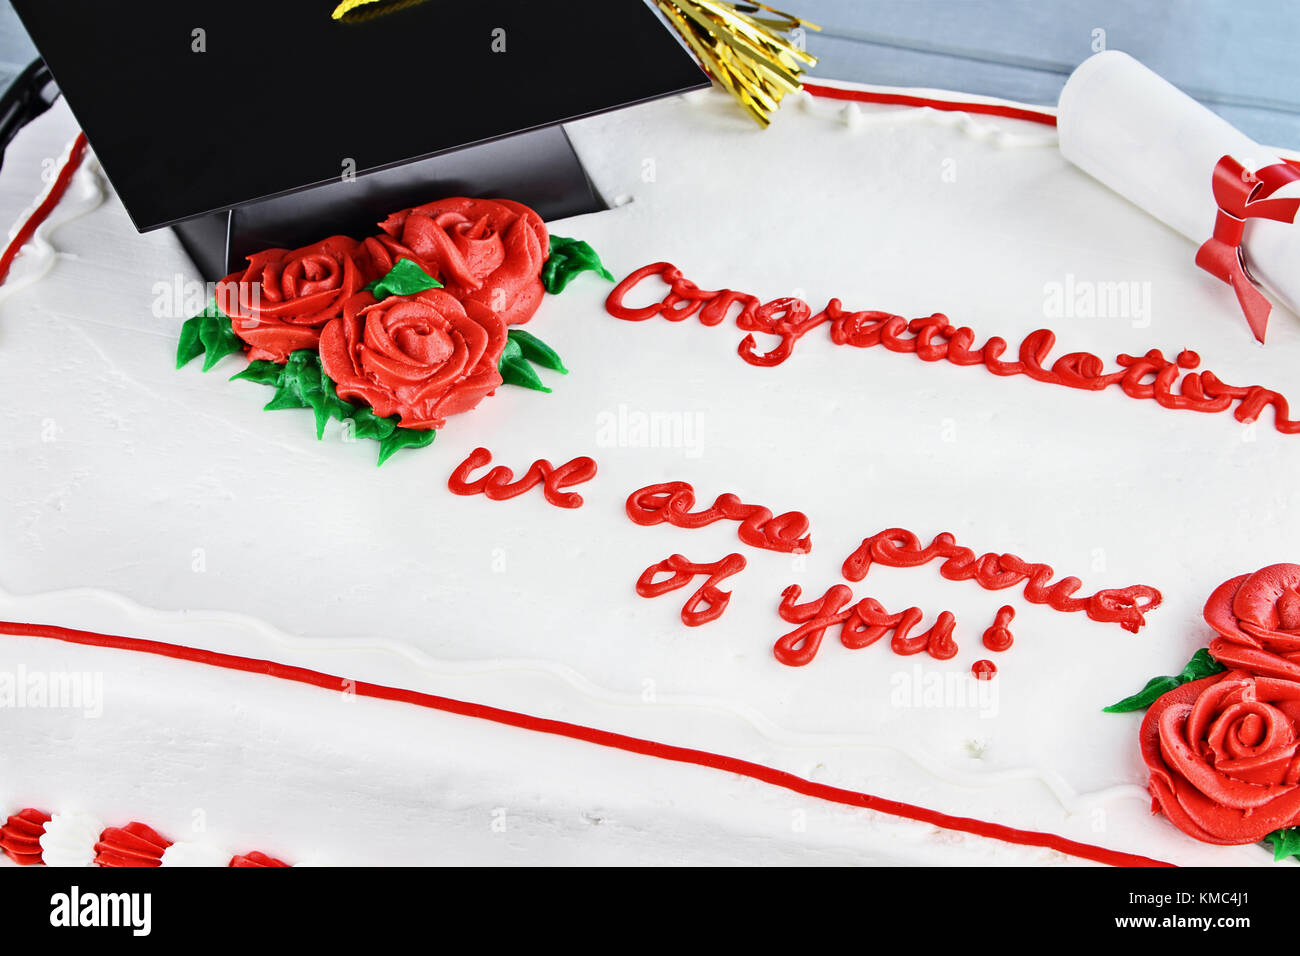 Vanilla graduation cake with school cap, tassel, diploma and red roses with text. Room for copy space. - Stock Image